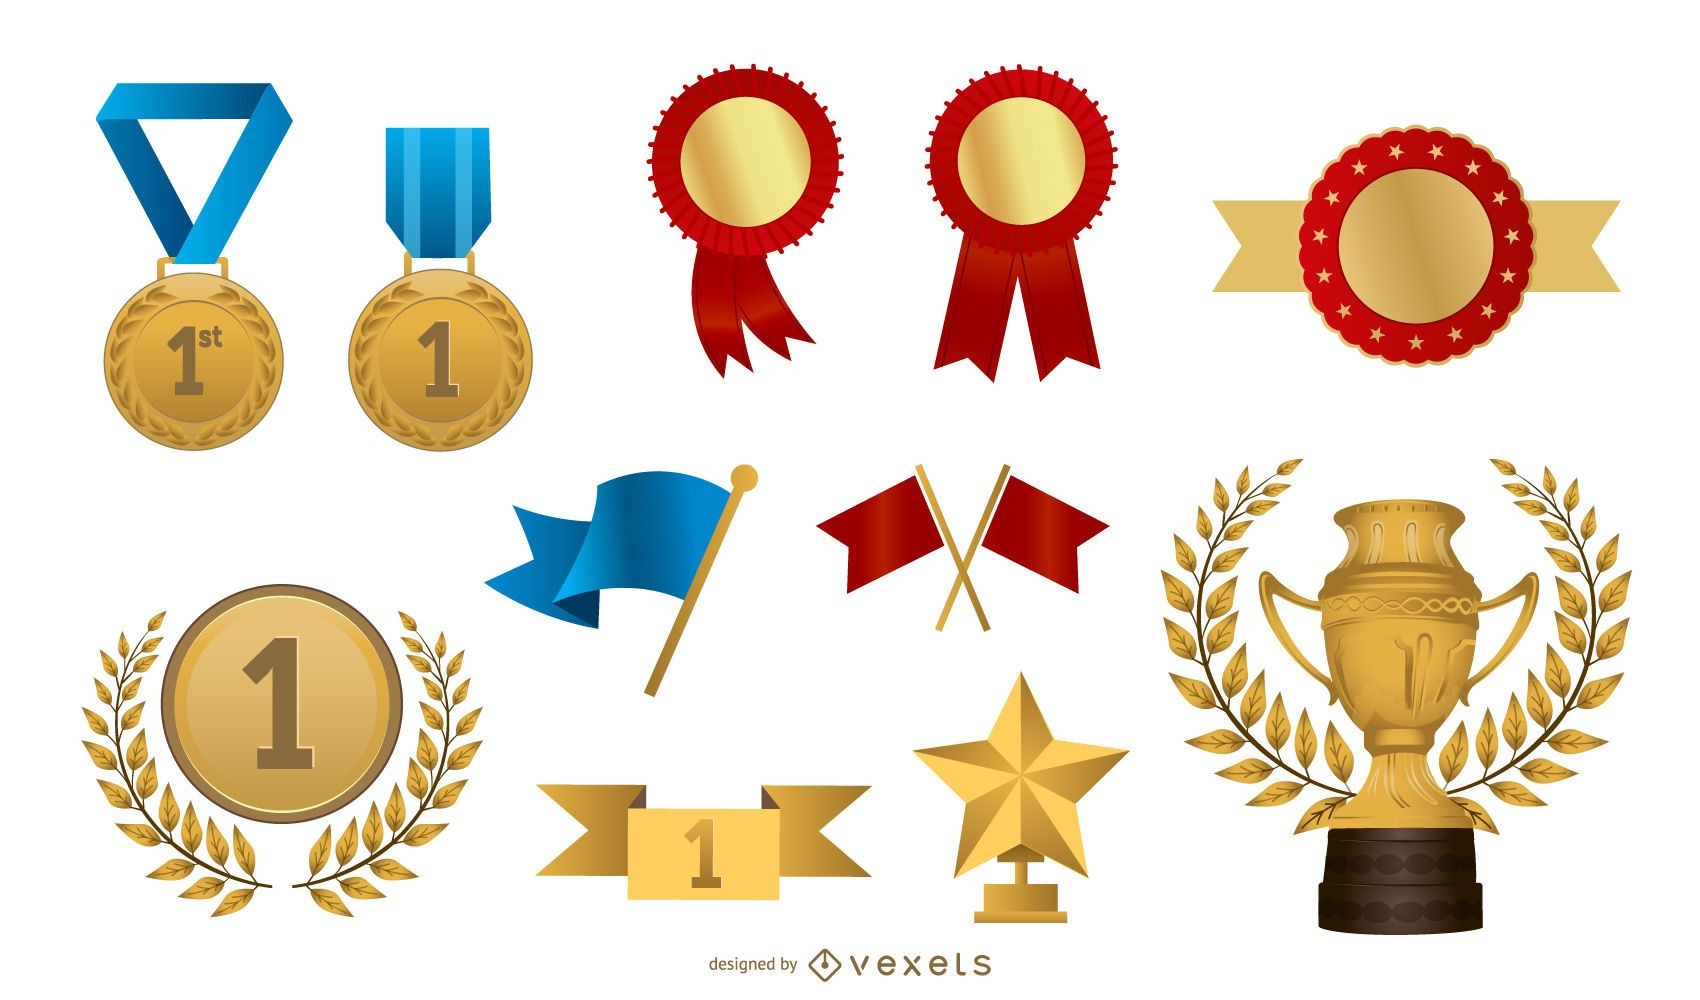 Some Of The Practical Badge Medal Vector